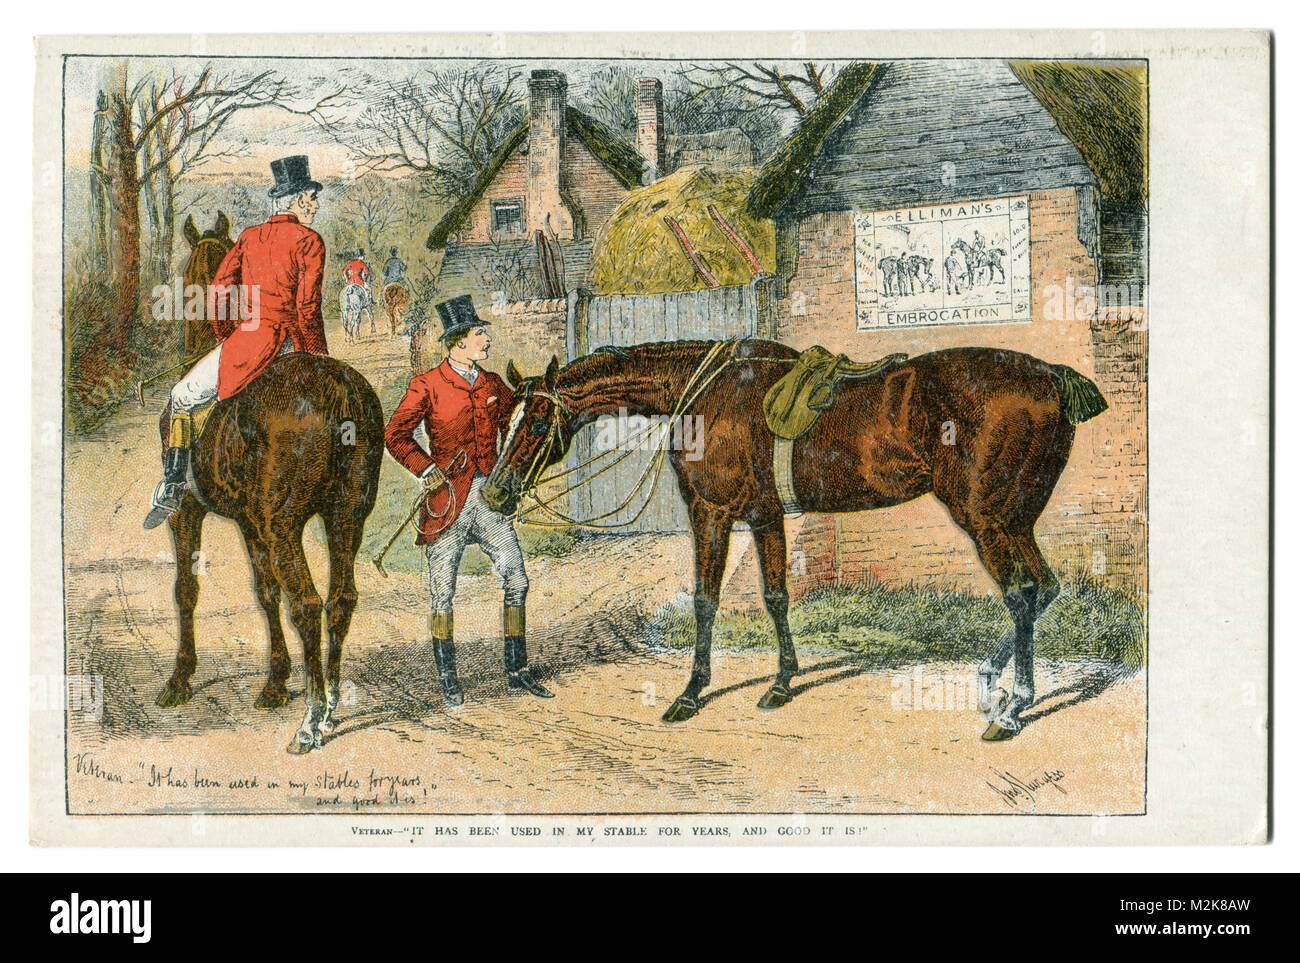 Old English postcard: Gentlemen in red frock coats, black cylinders riding horses on a background of brick cottages - Stock Image